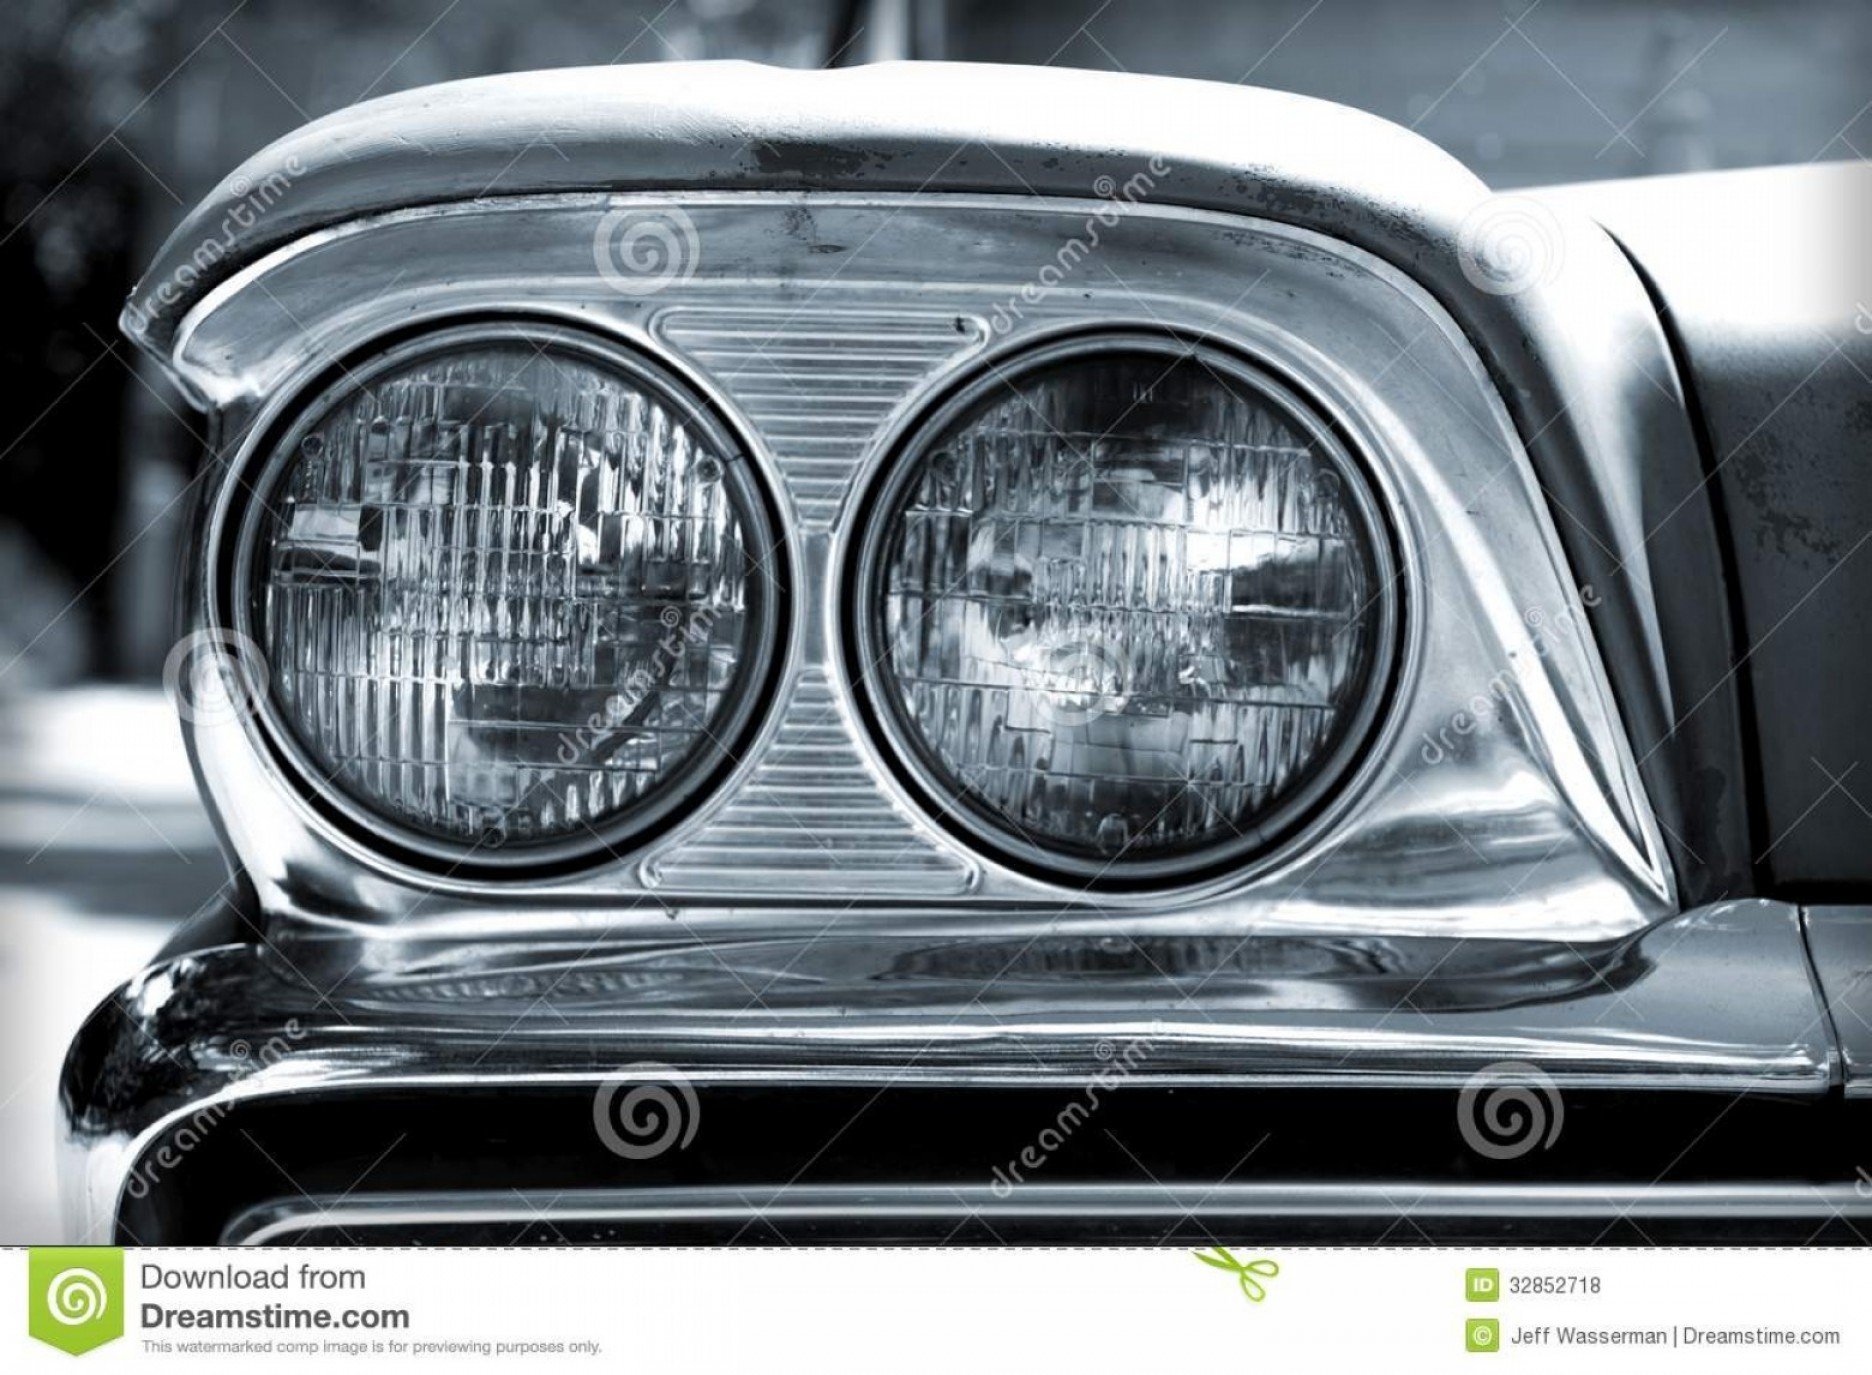 Vector Round Headlight: Royalty Free Stock Photos Vintage Car Headlights Closeup Black White Image